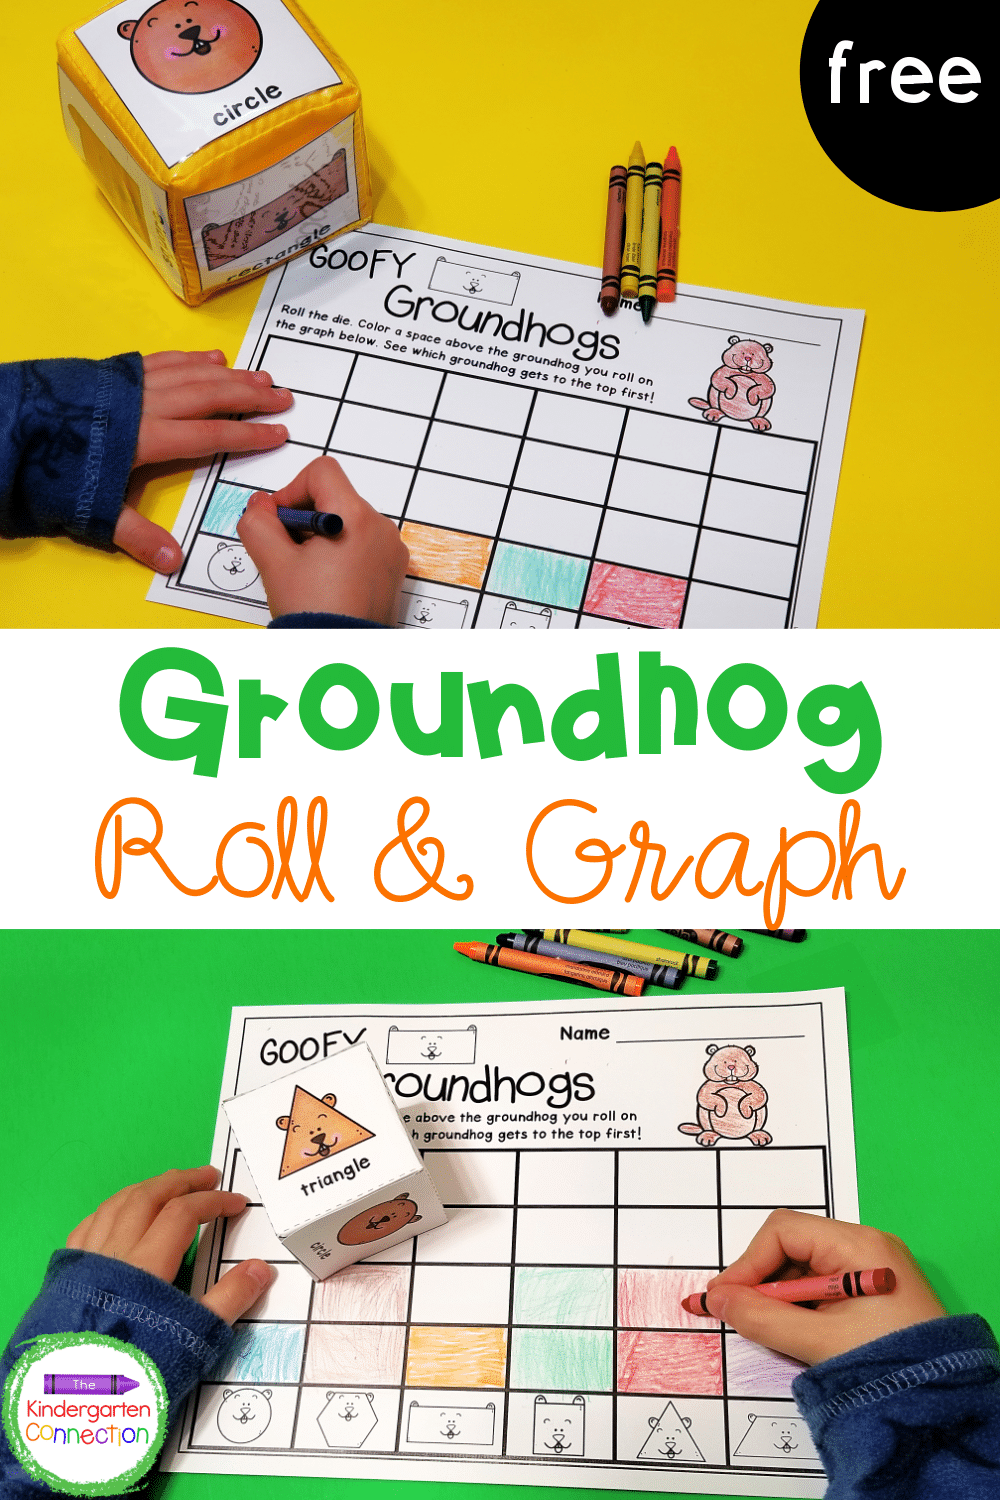 Add this FREE roll and graph Groundhog Day activity to your math centers this winter for low-prep, hands-on learning fun!